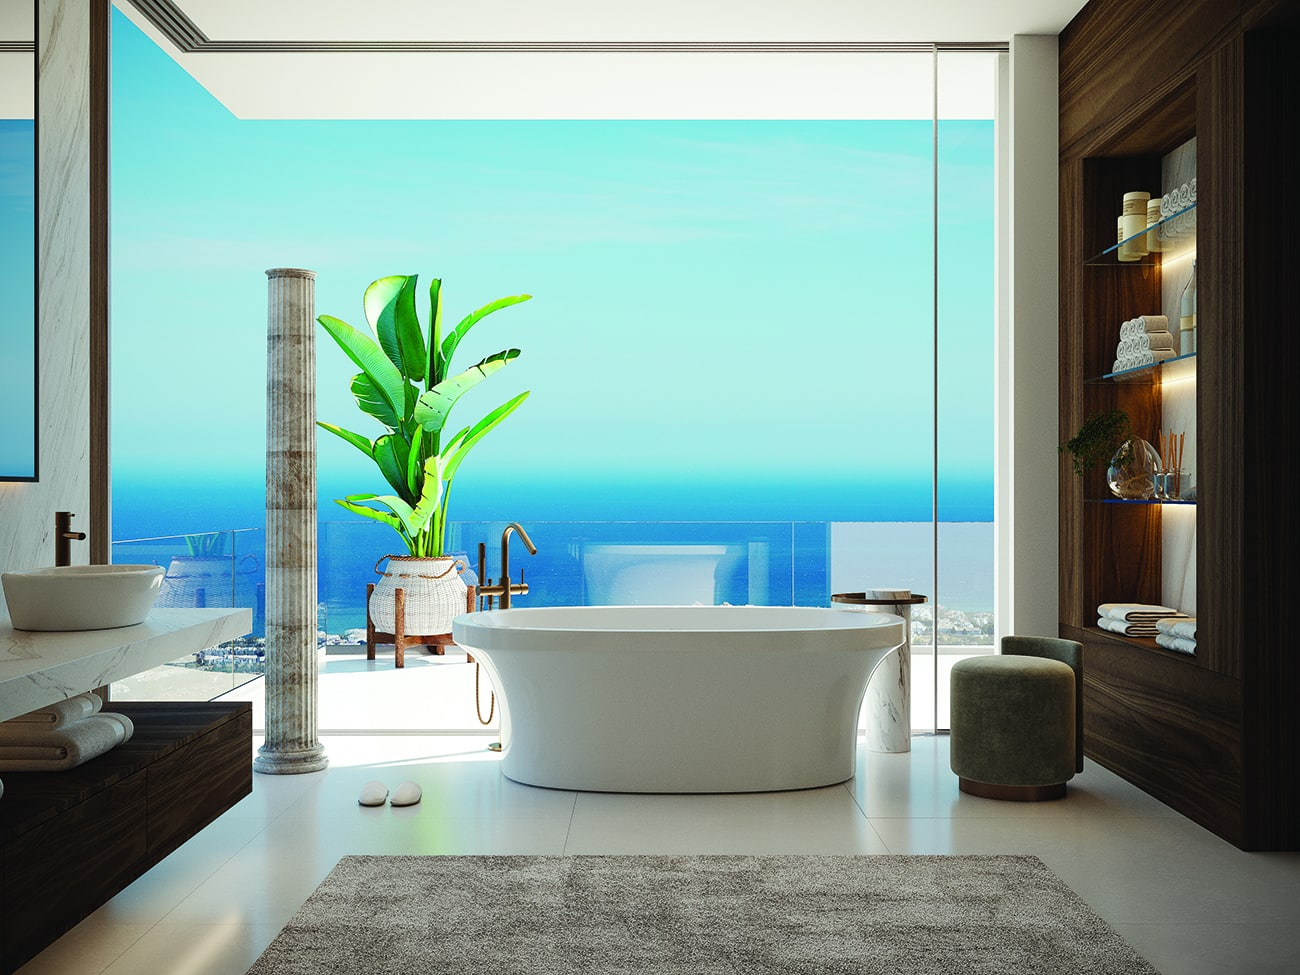 At Vista Lago Residences the view from the bath is incomparable!